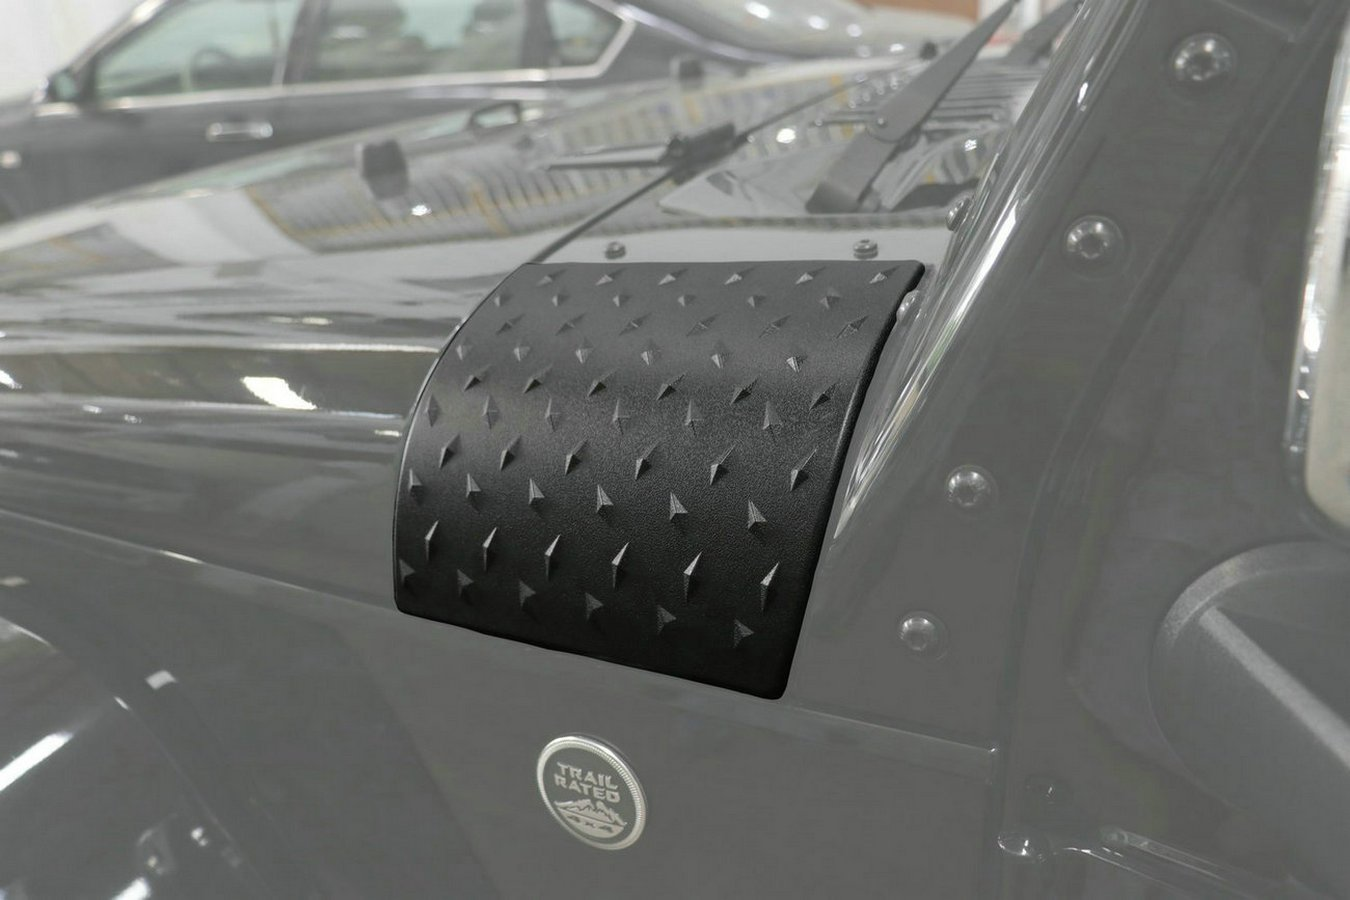 Danti Latest Black Cowl Body Armor Outer Cowling Cover For Jeep Wrangler Rubicon Sahara Jk Unlimited 2007 2008 2009 2010 2011 2012 2013 2014 2015 2016 2017 2018